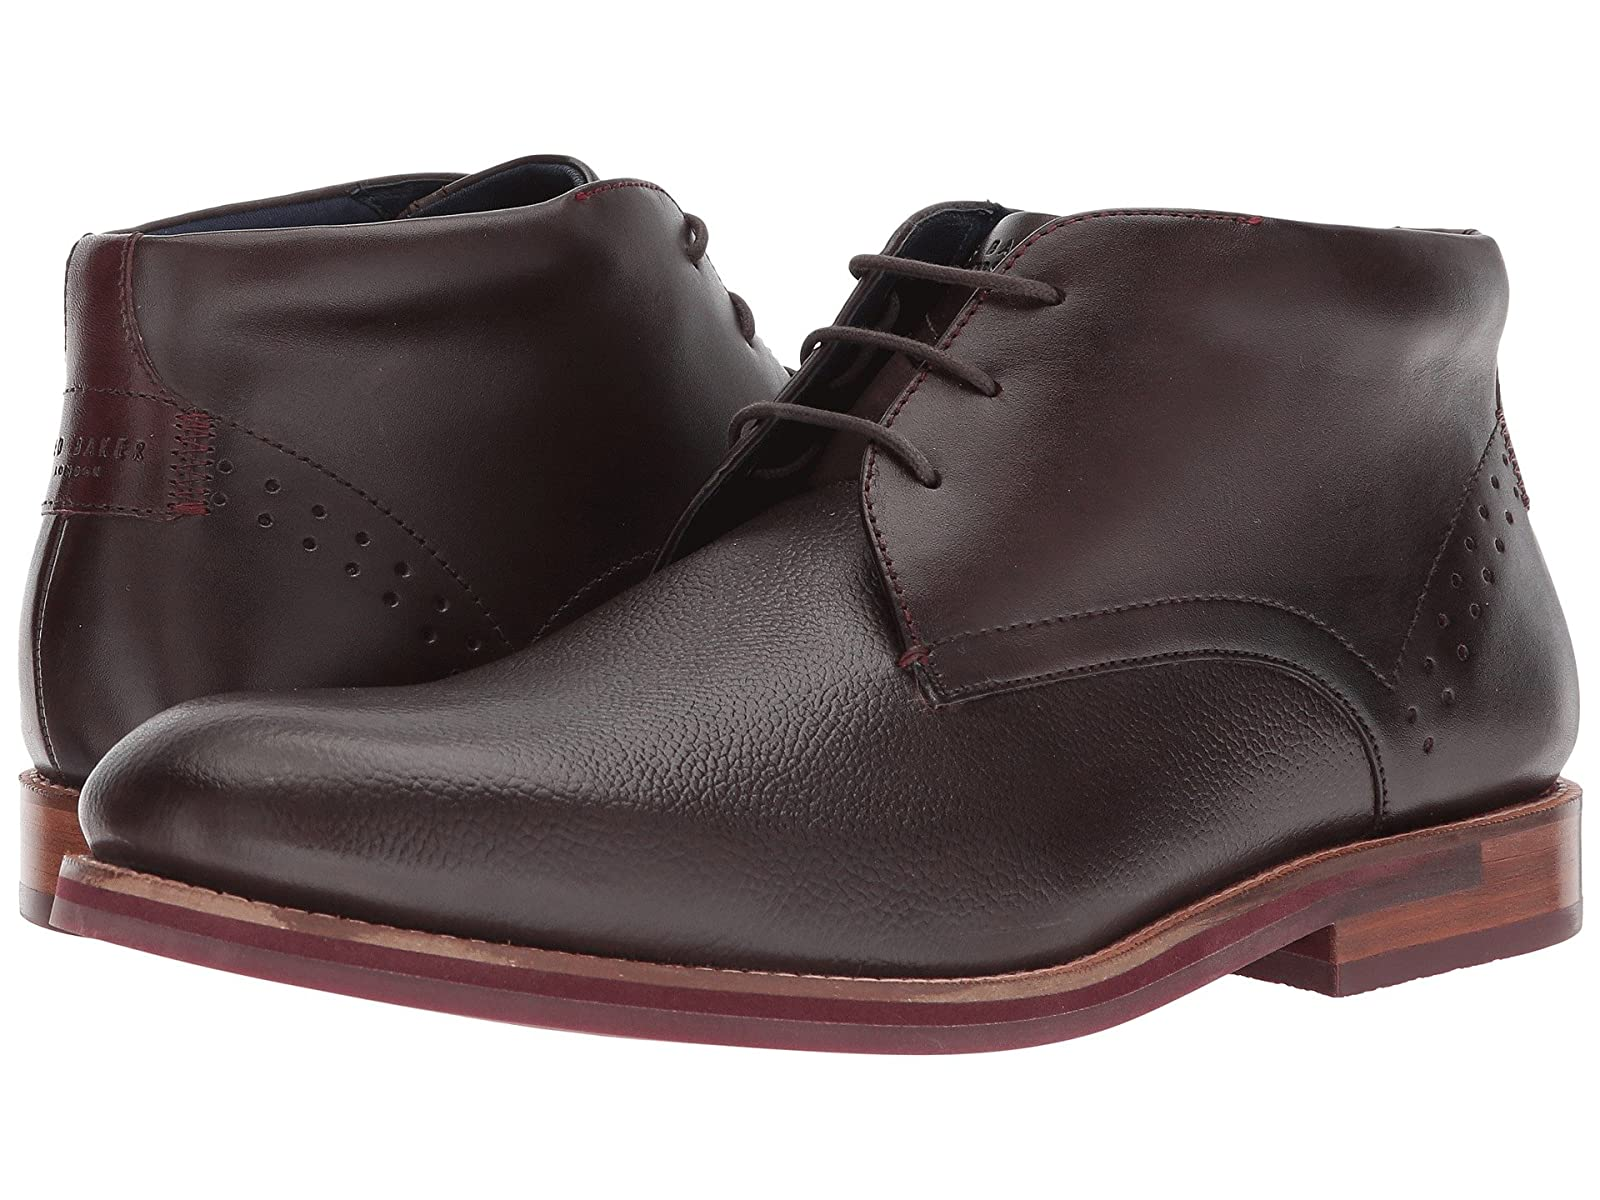 Ted Baker DaiinoCheap and distinctive eye-catching shoes